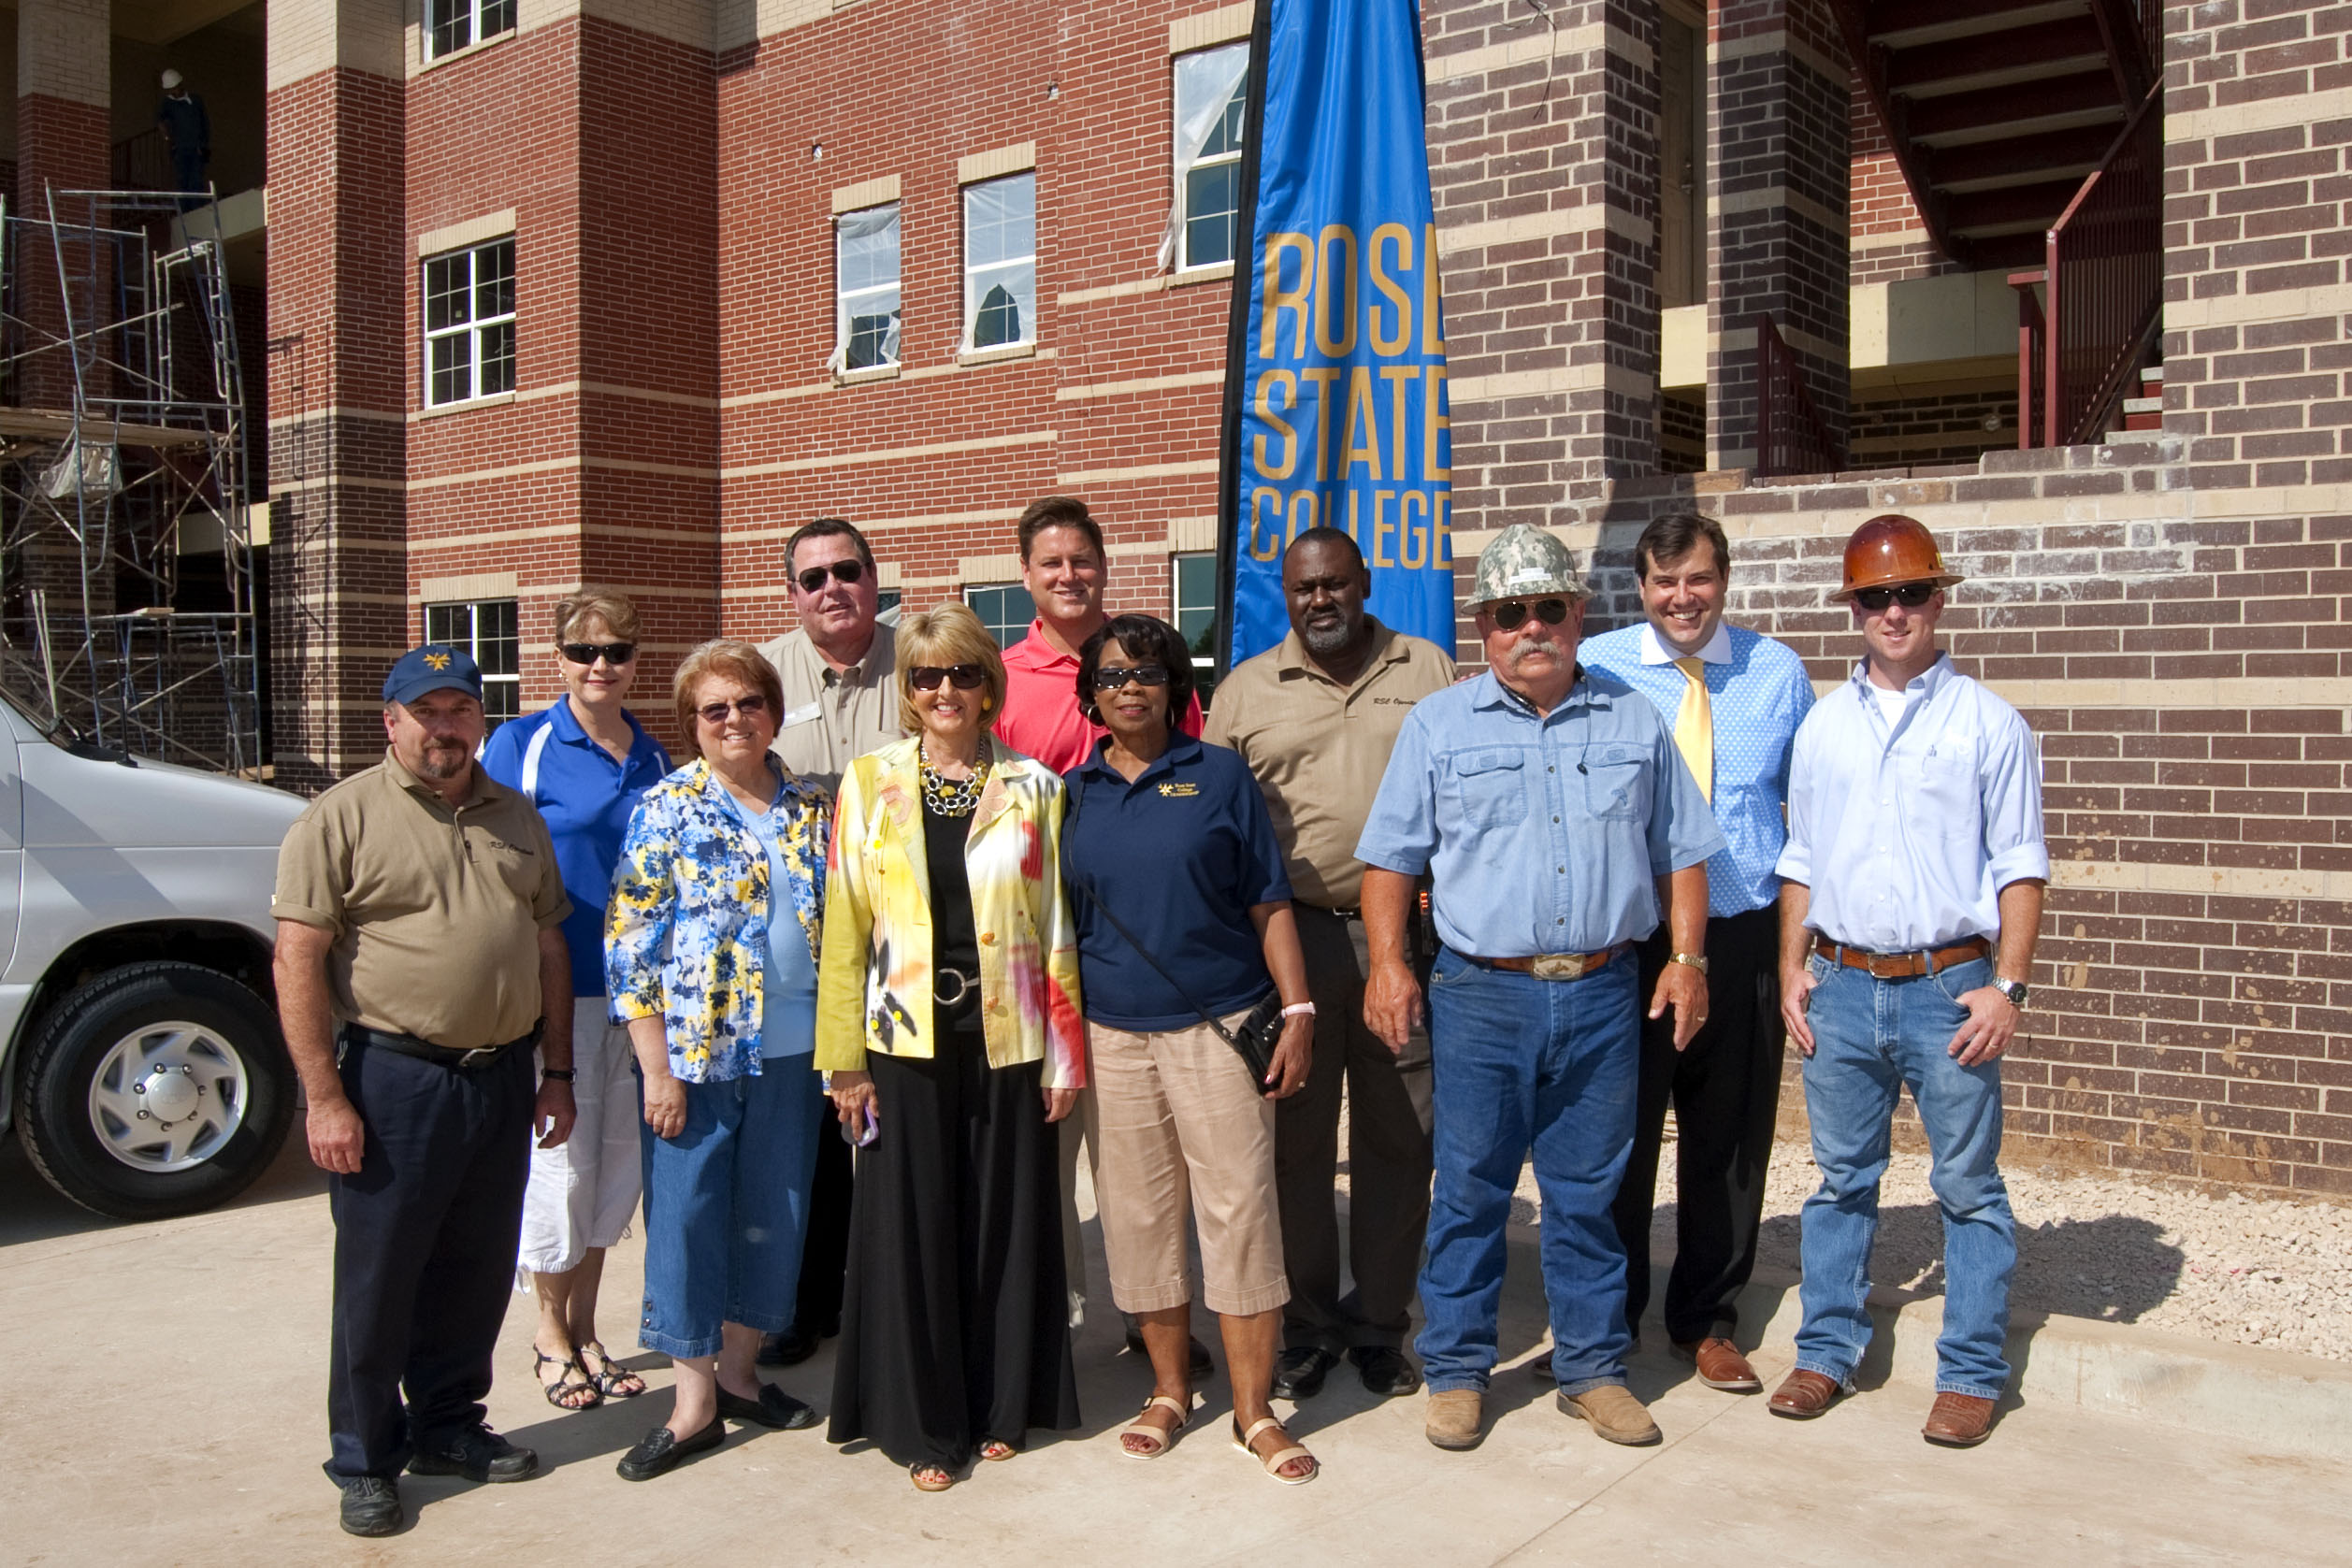 Regents and President Tour Student Housing